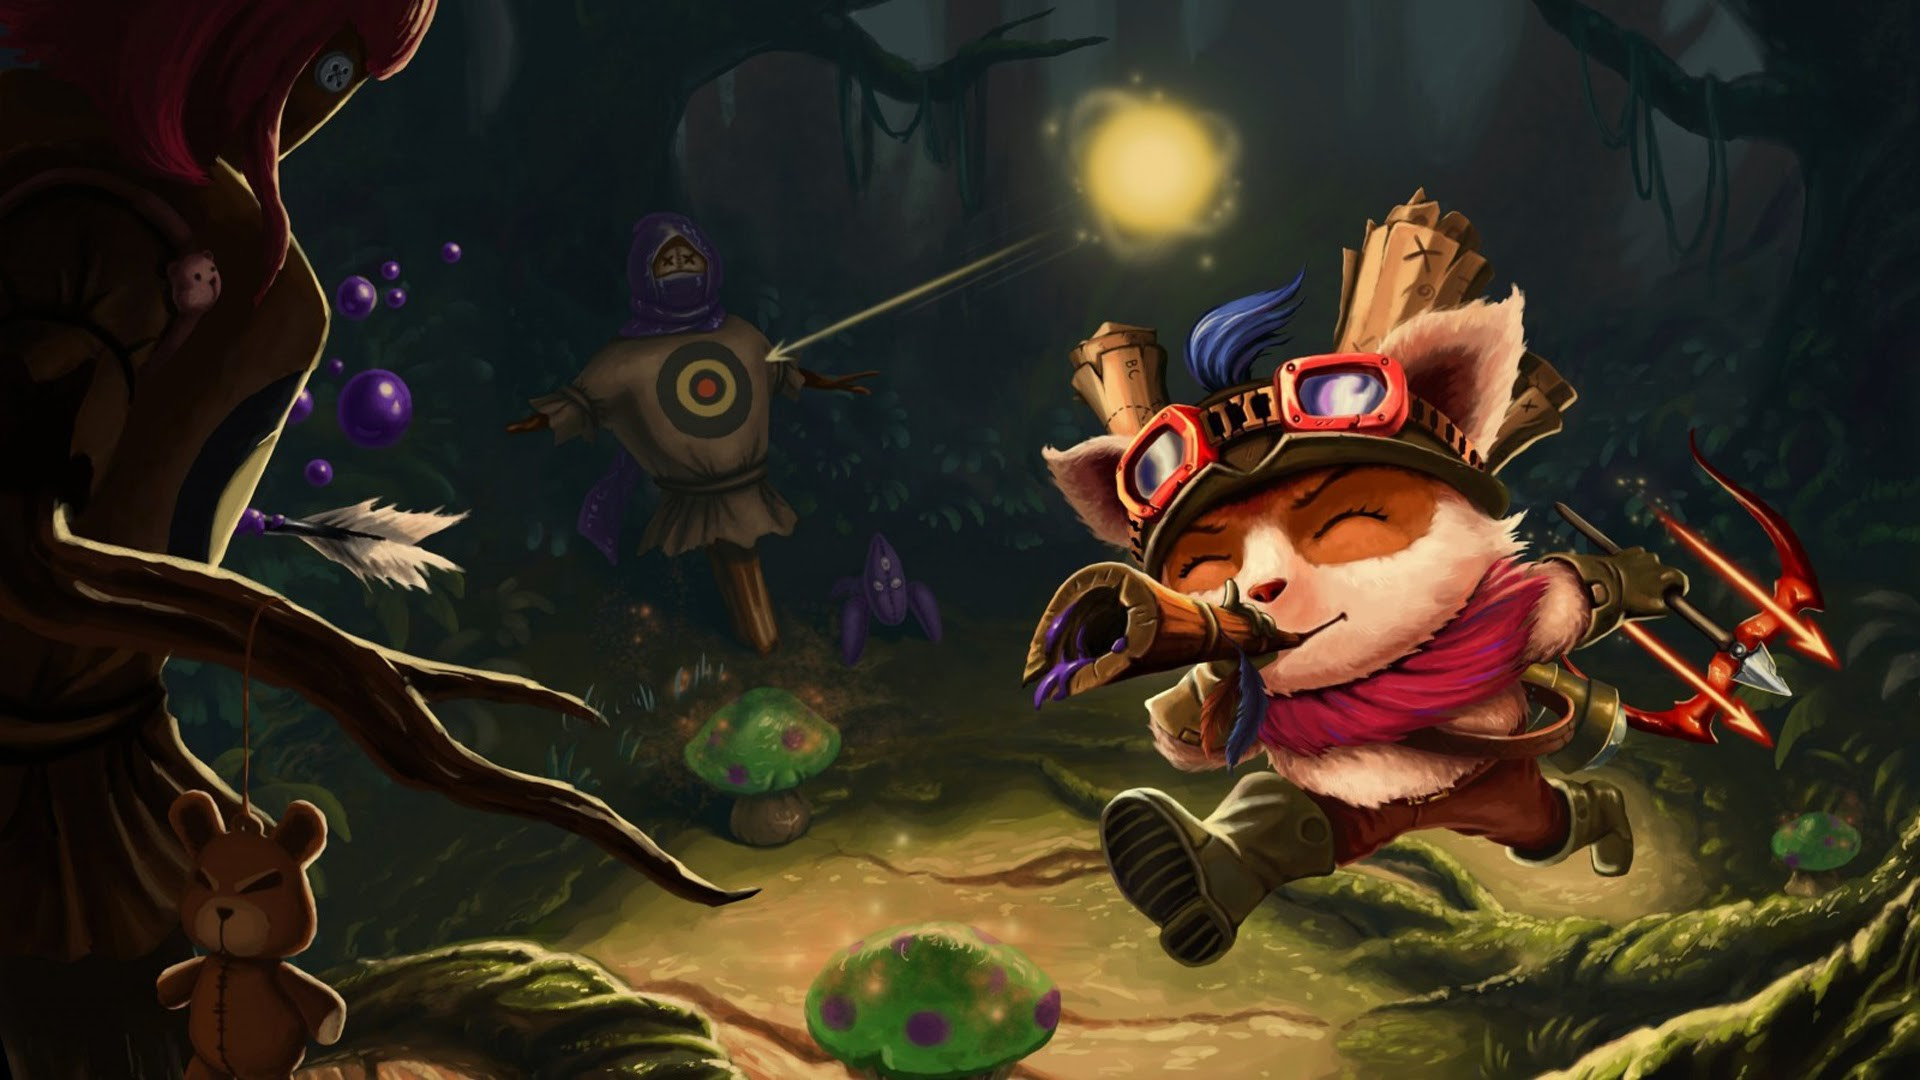 Teemo Wallpapers 77 Images